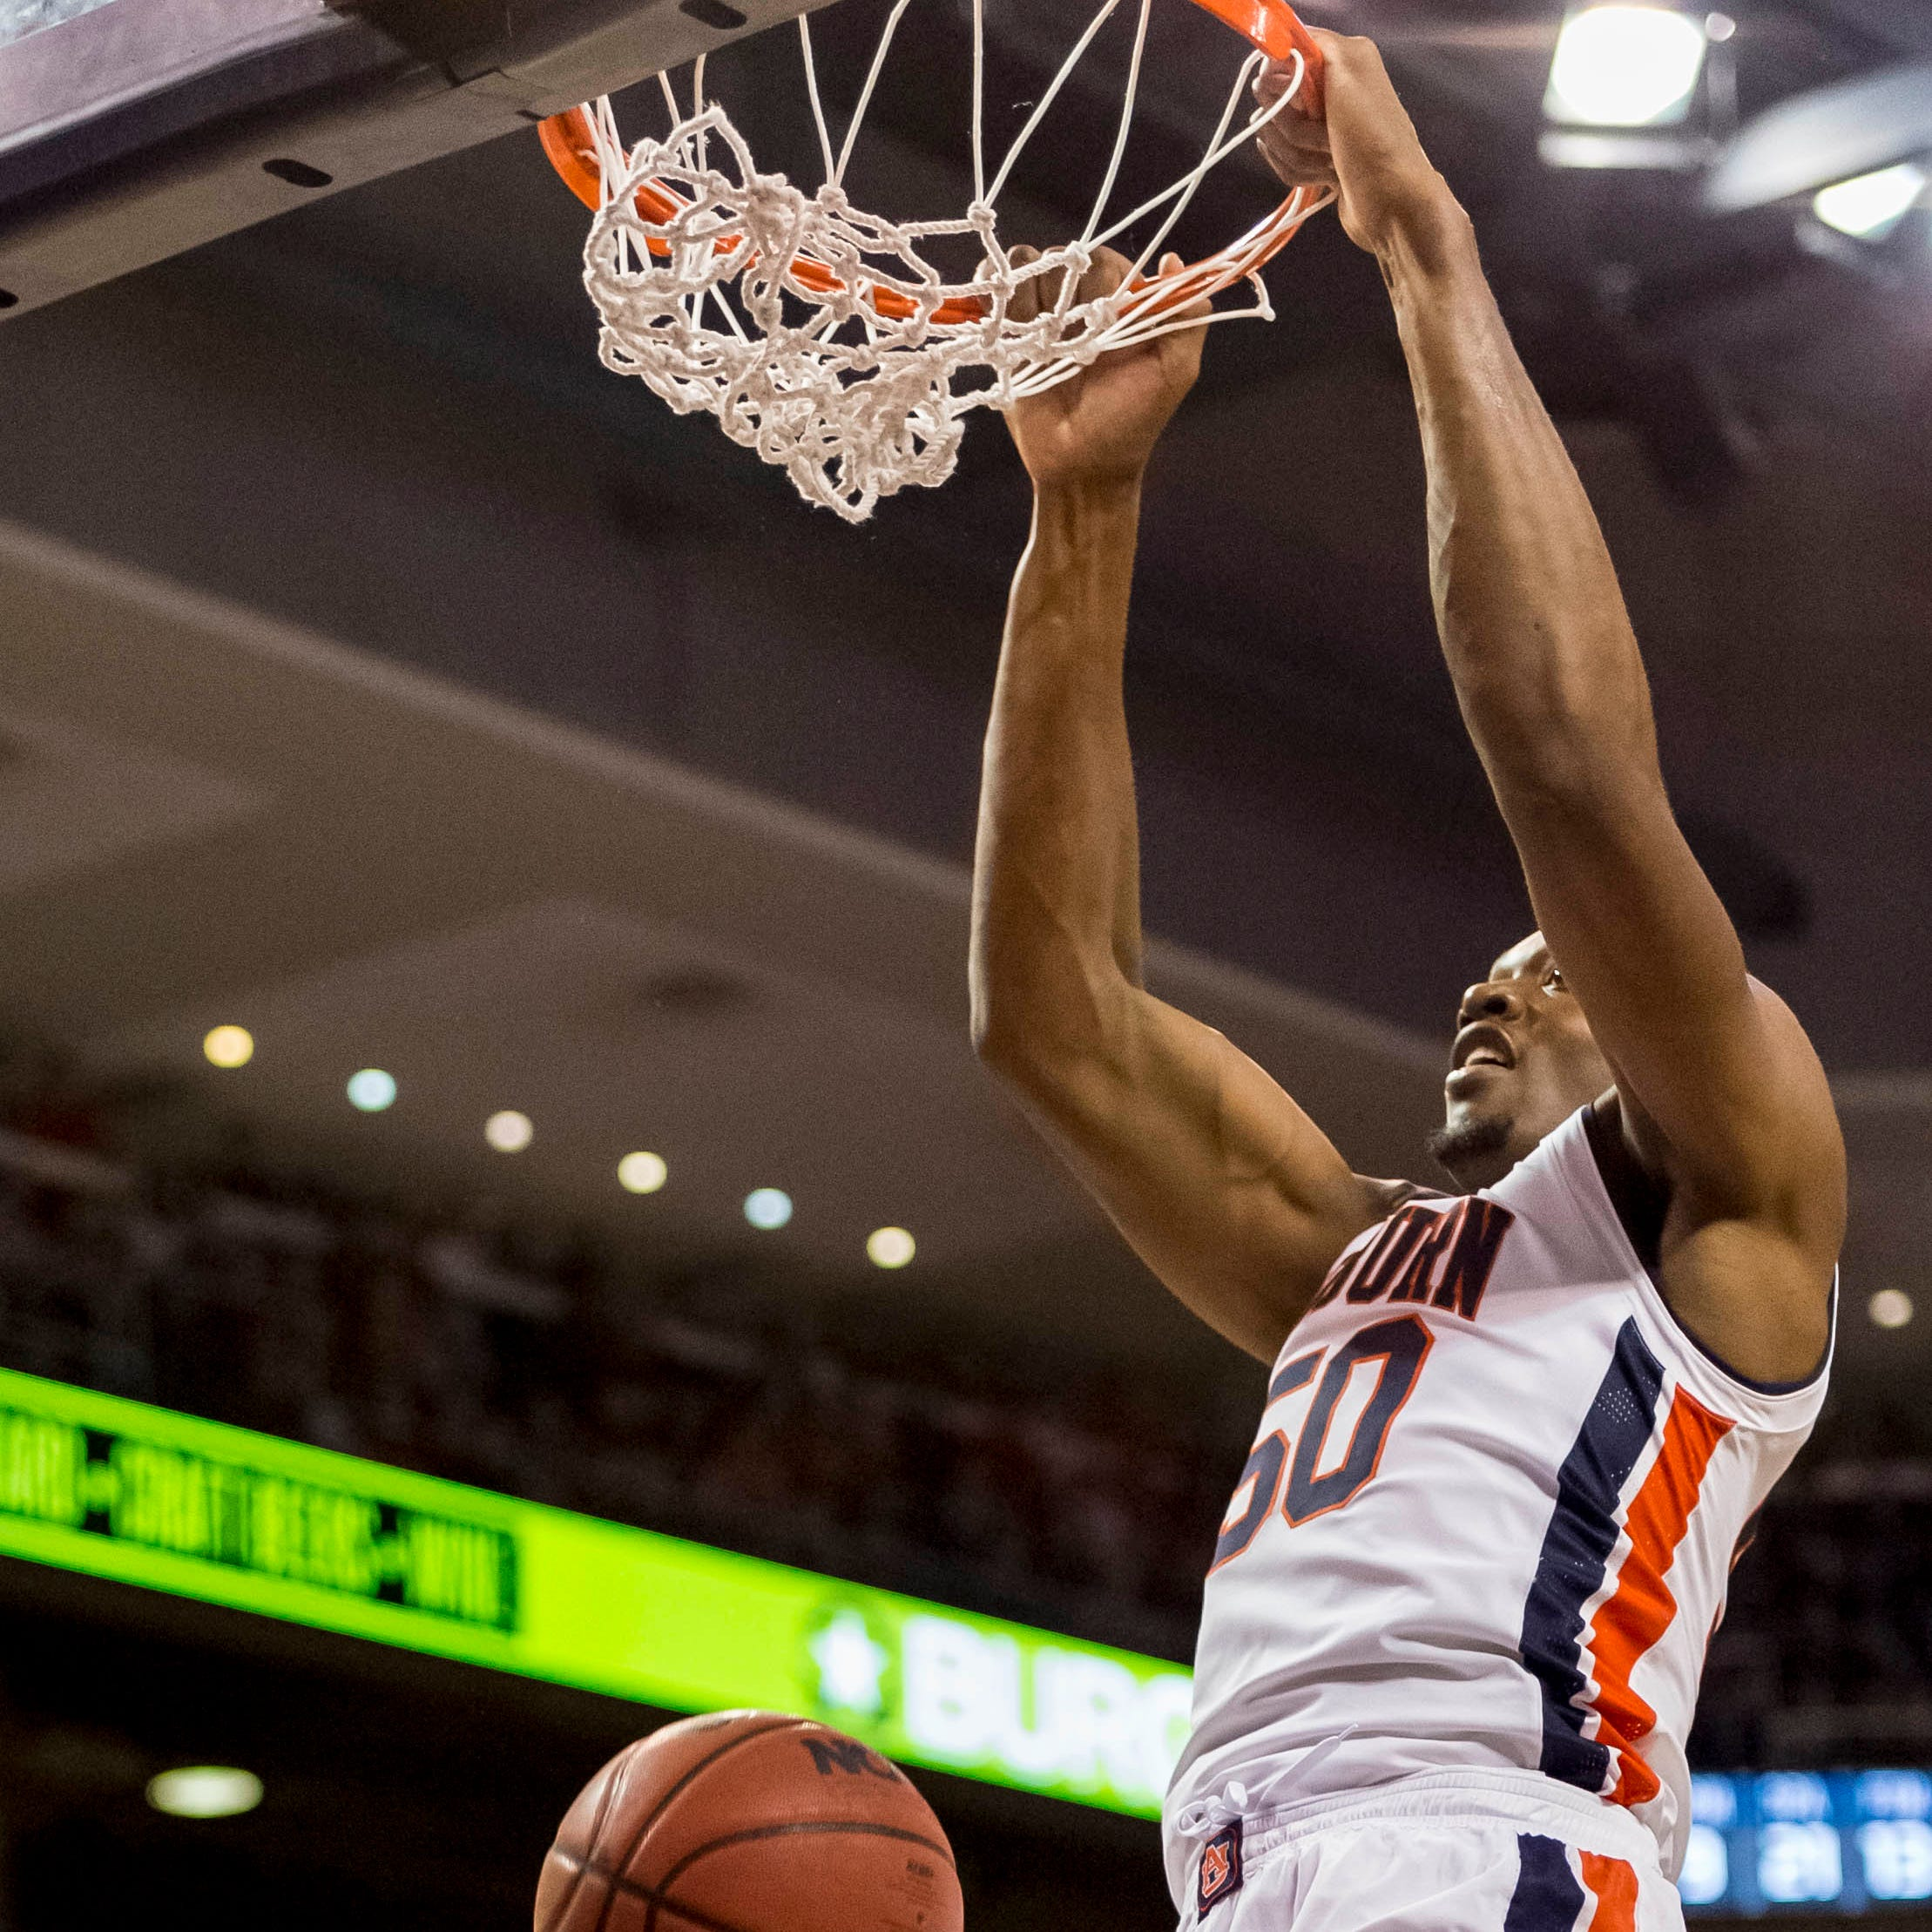 Auburn center Austin Wiley 'moving forward' after being ineligible last season